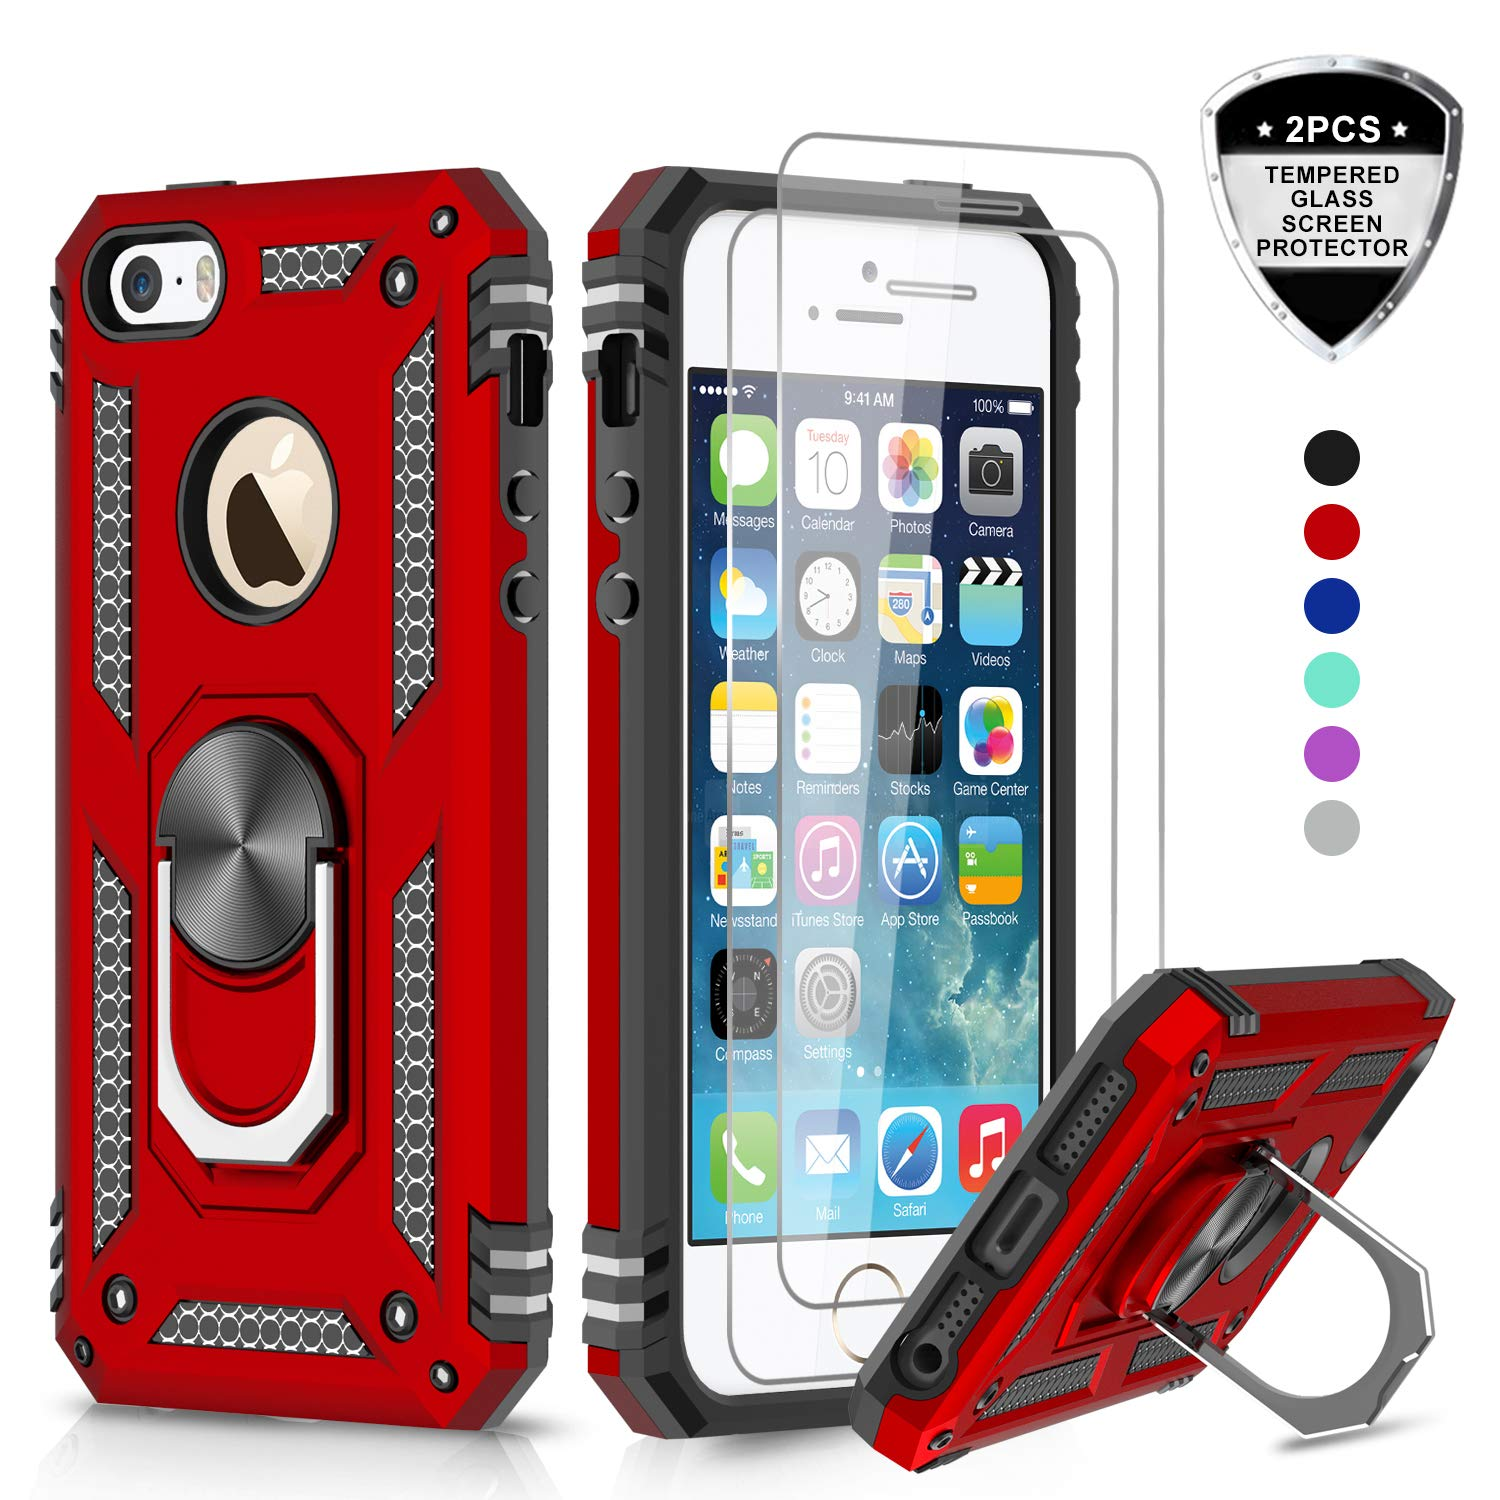 LeYi iPhone se Case, iPhone 5s Case, iPhone 5 Case with Tempered Glass Screen Protector [2 Pack], Military Grade Protective Phone Case with Ring Magnetic Car Mount Kickstand for iPhone 5/5s/se, Red